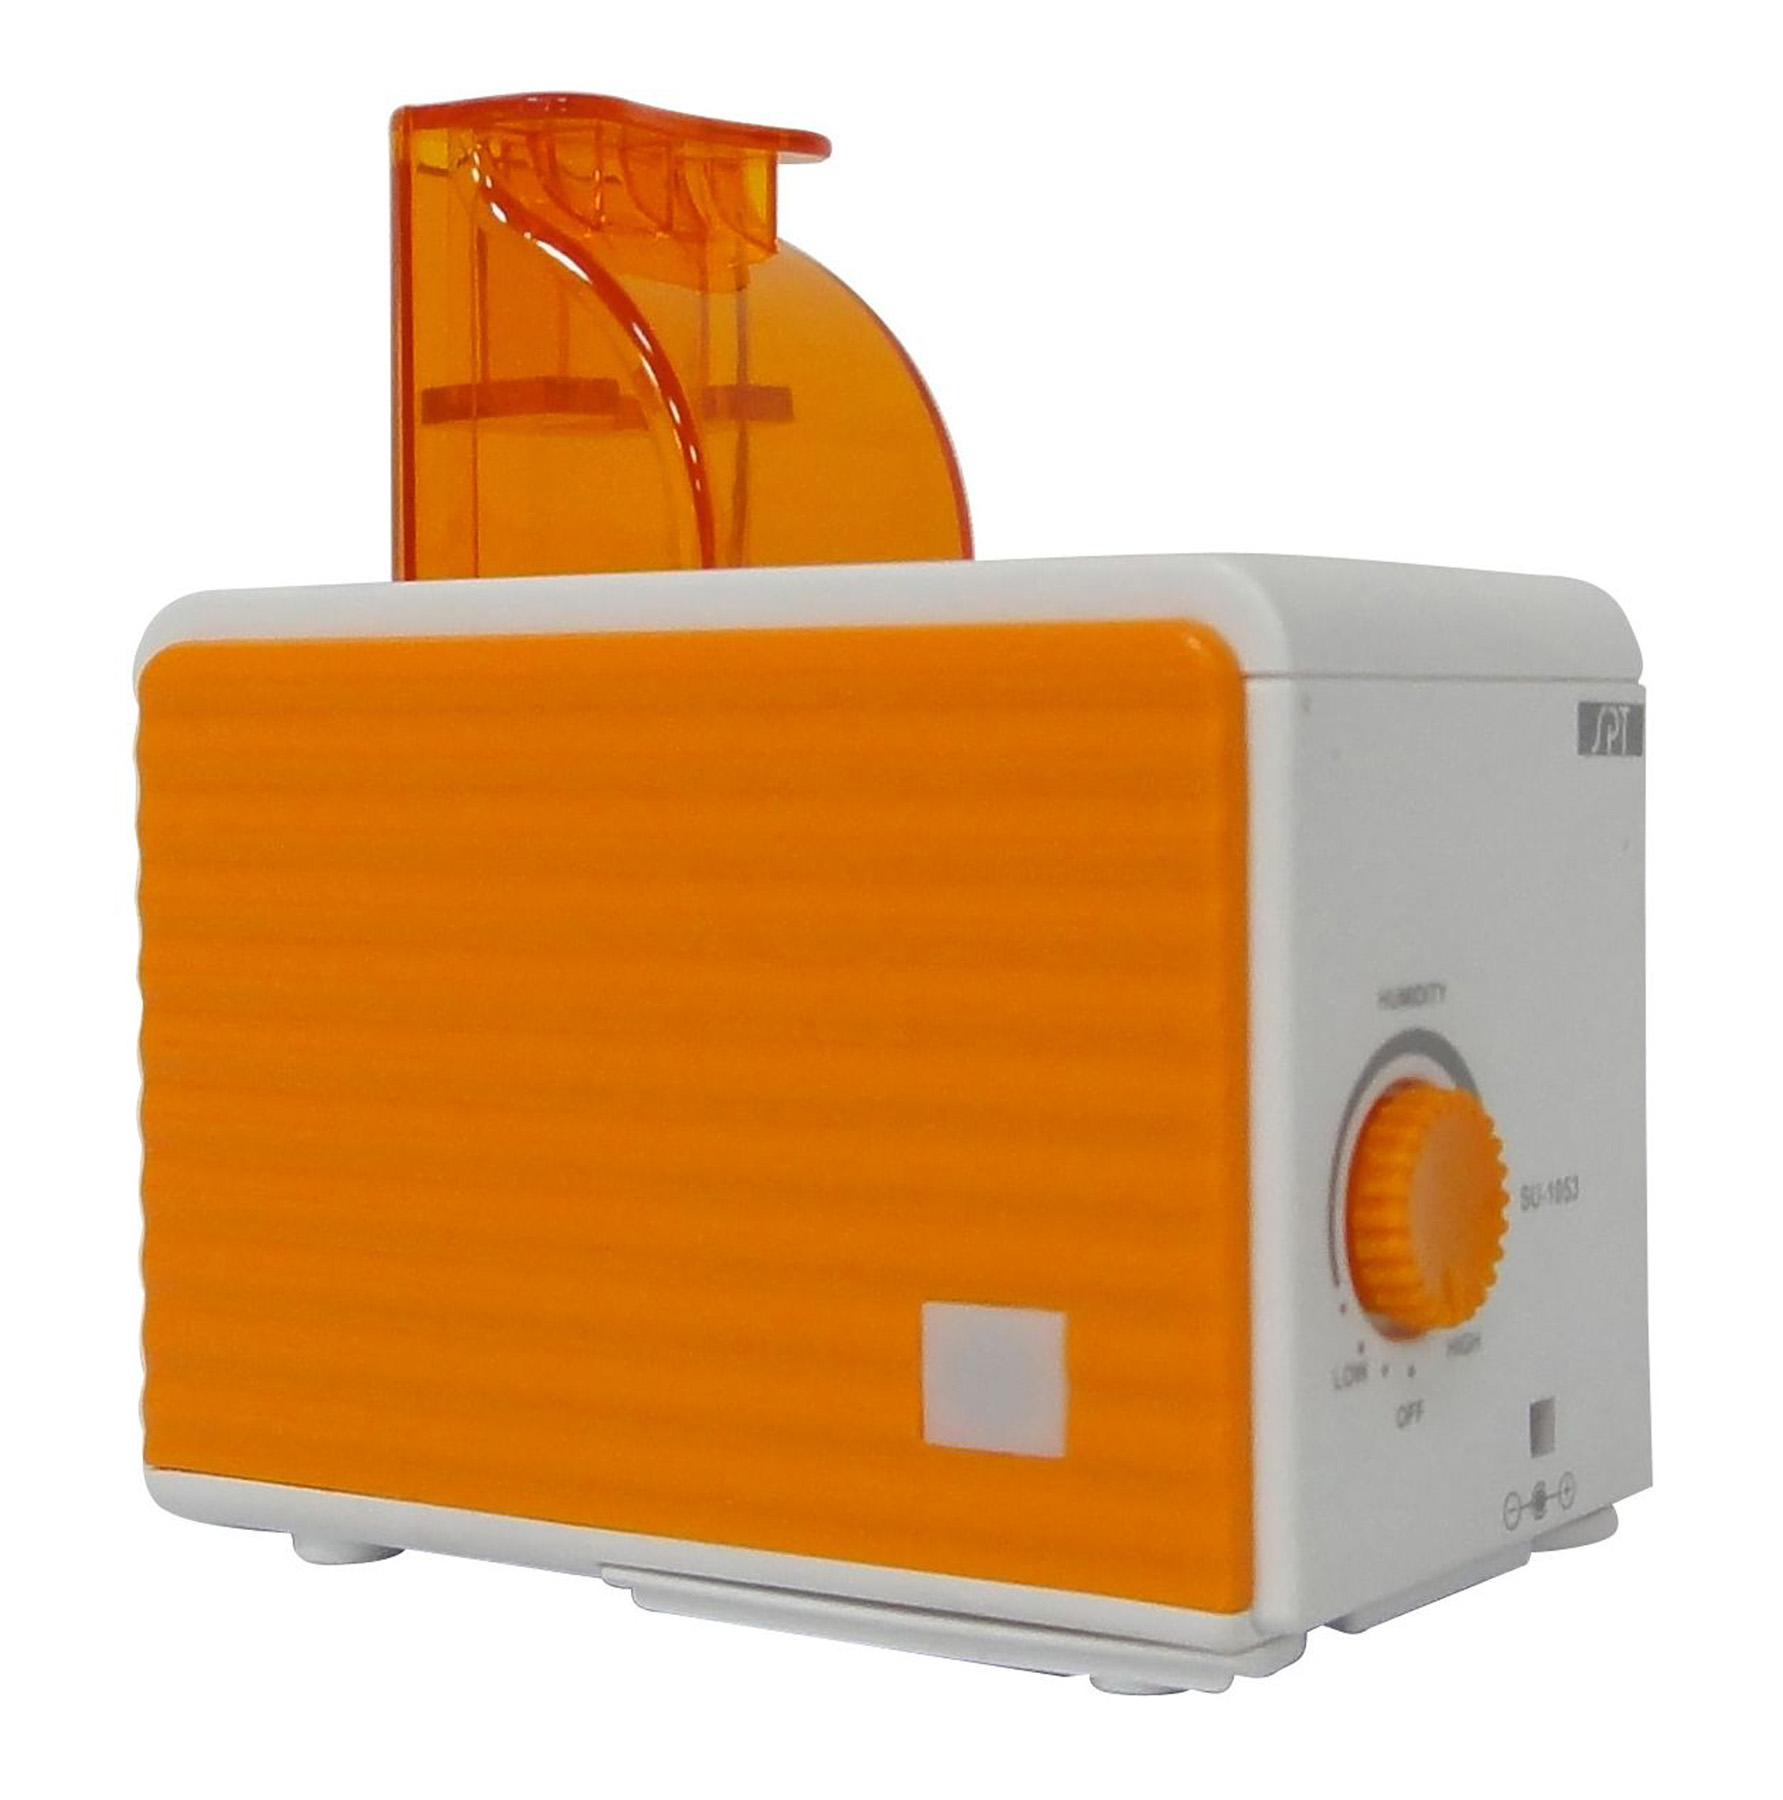 Sunpentown Personal Humidifier, Orange